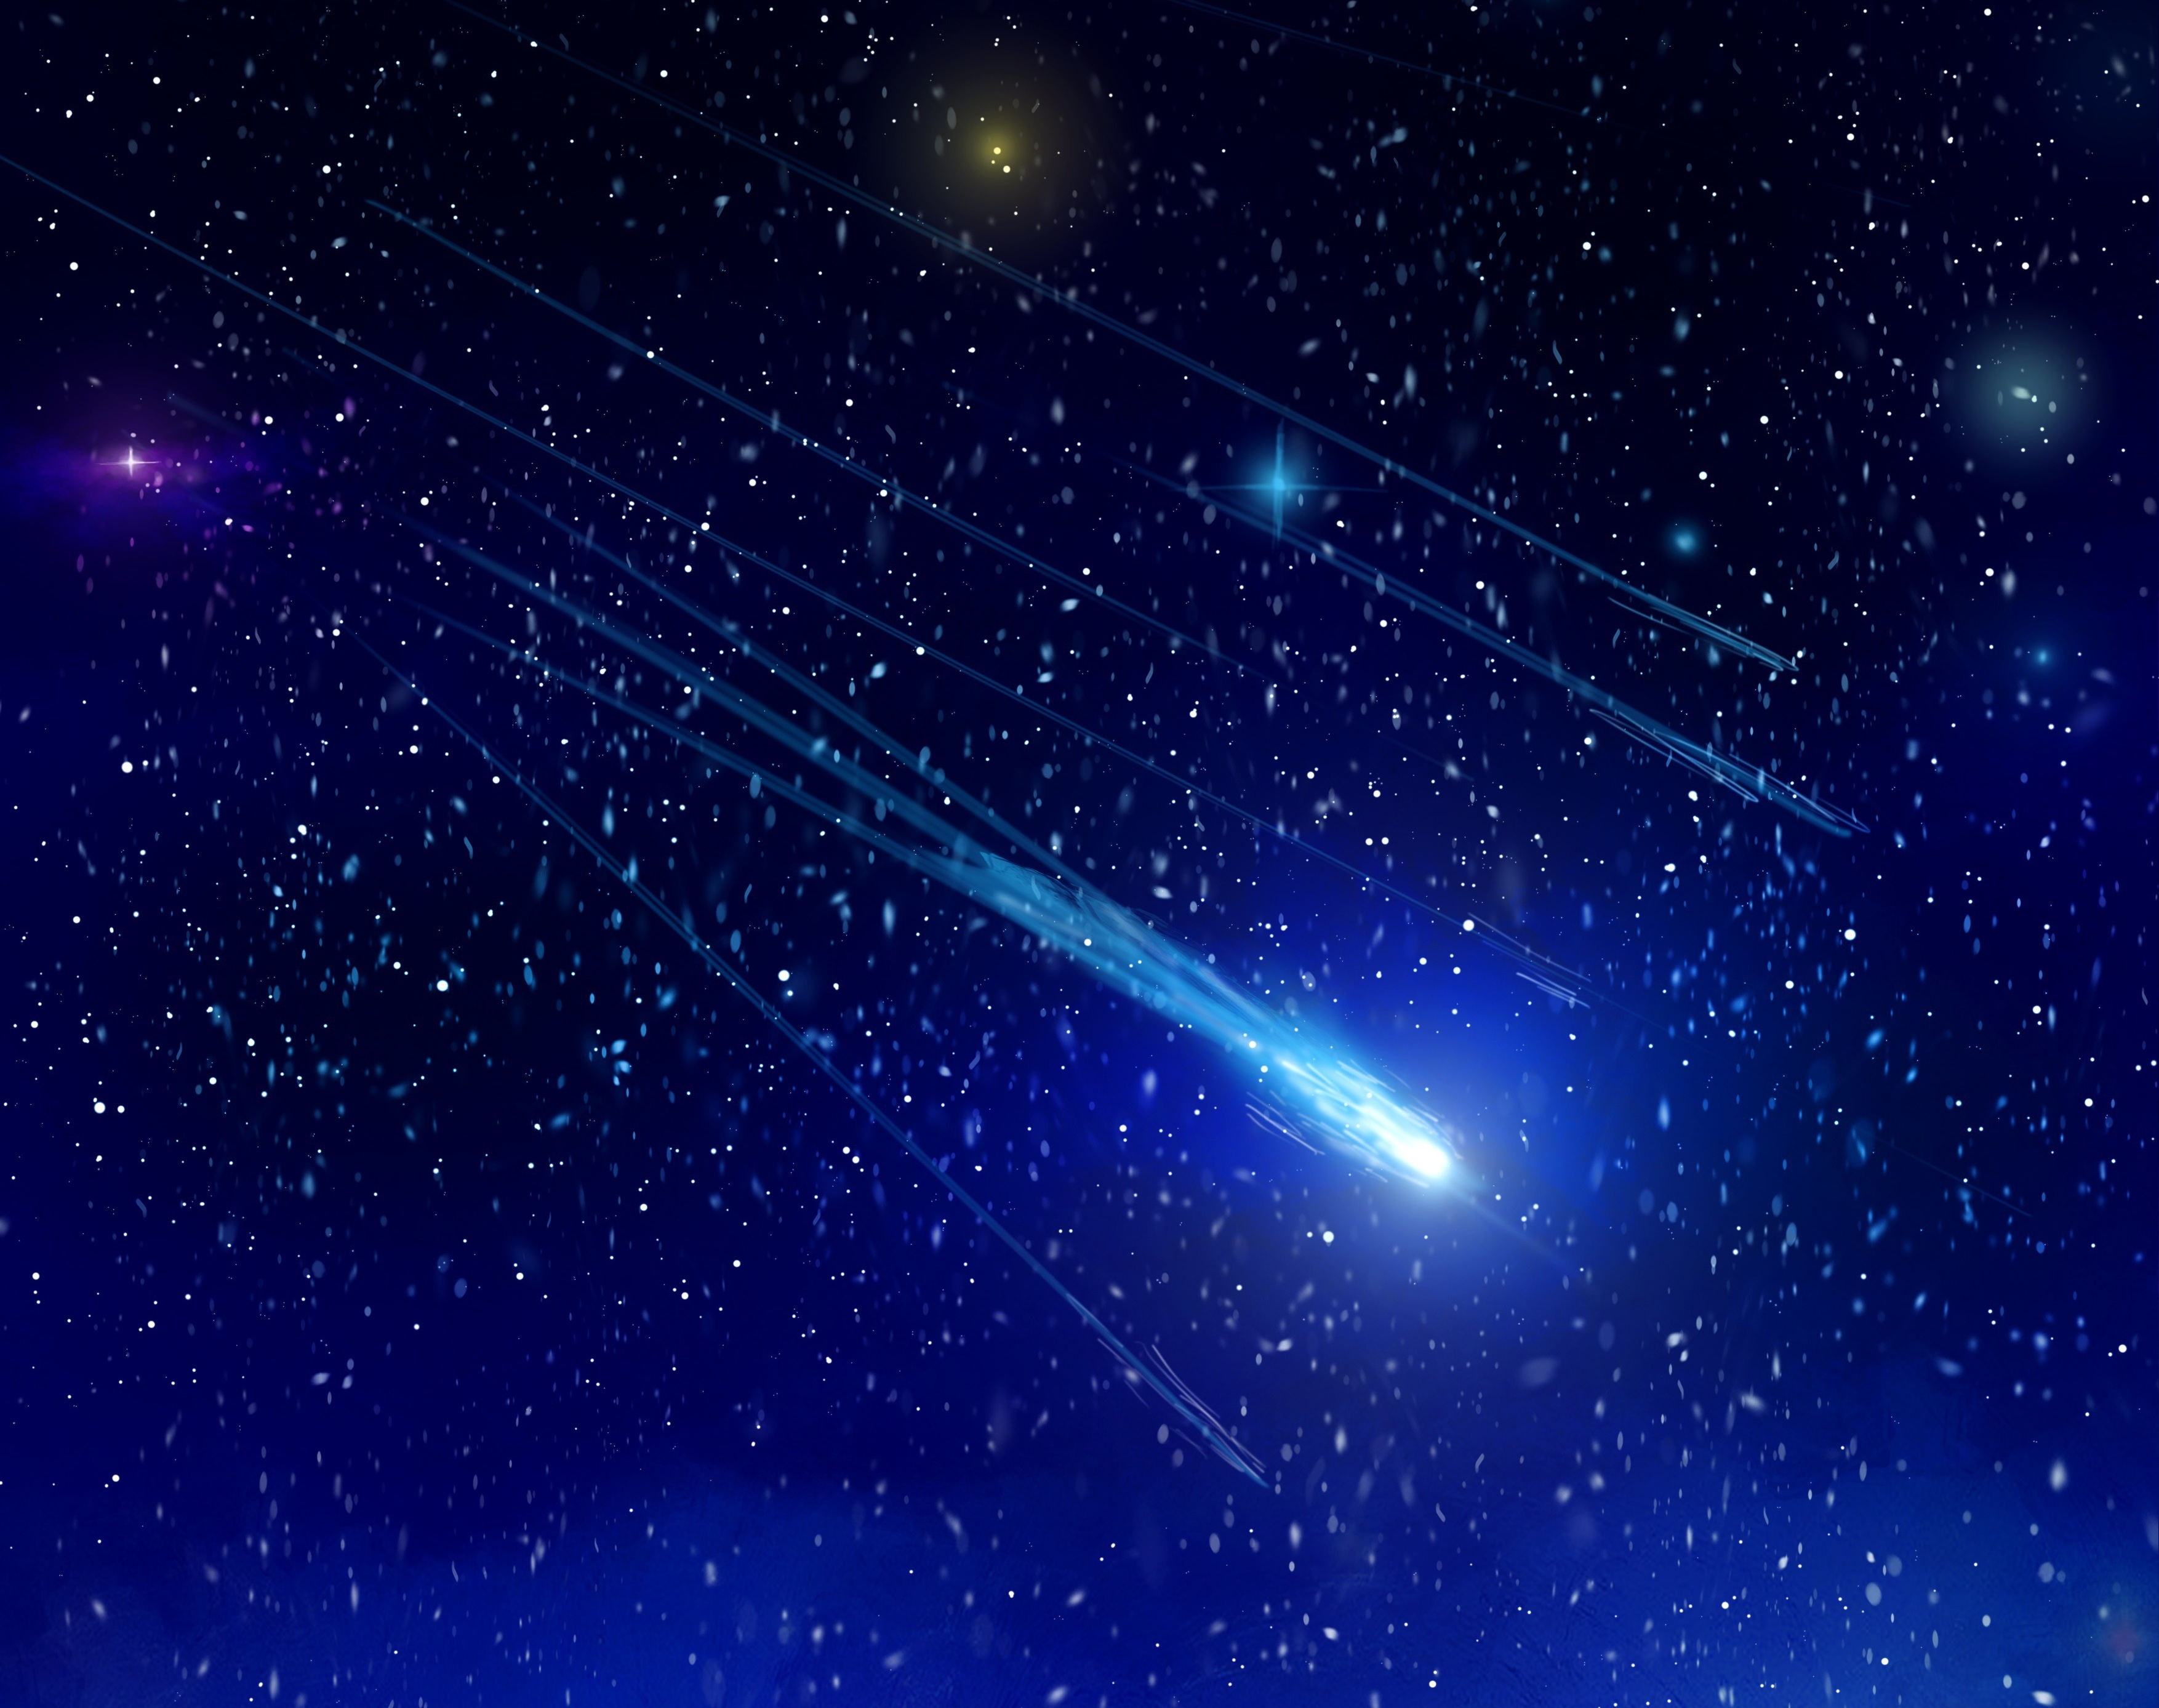 Wallpaper space stars shooting star wallpapers space   download 3508x2775